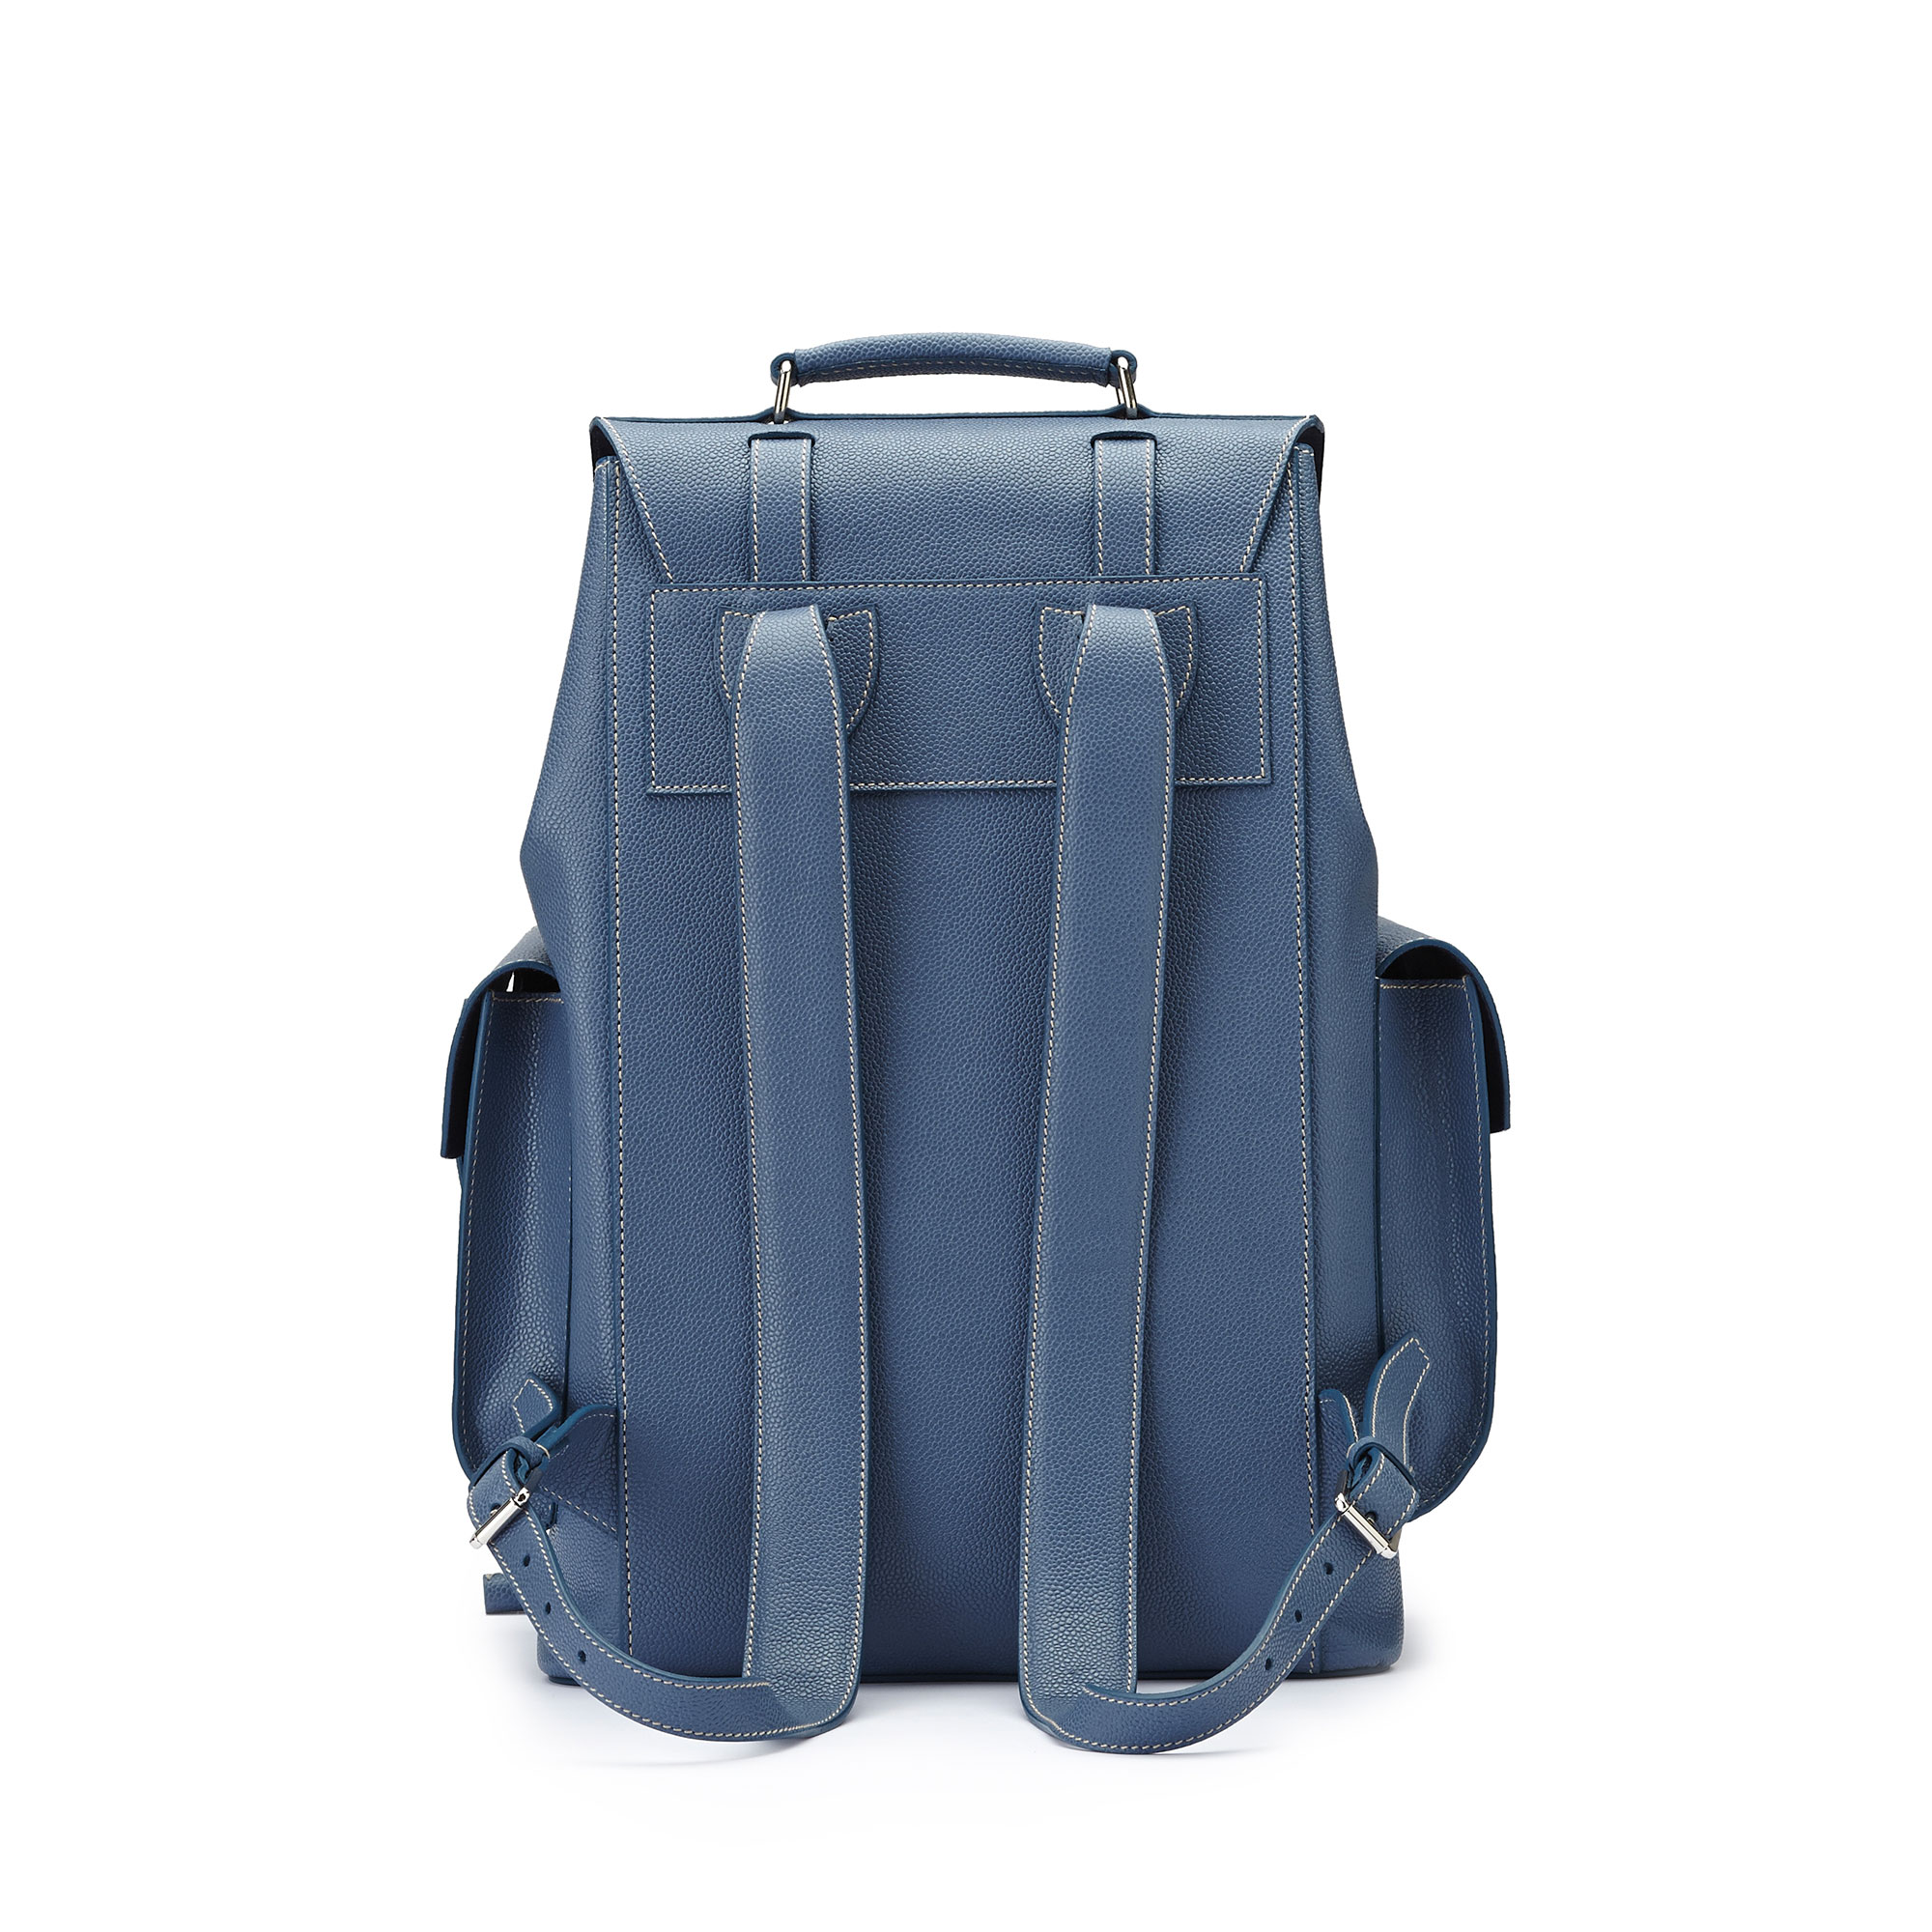 The blue grain calf Traveller Backpack by Bertoni 1949 03